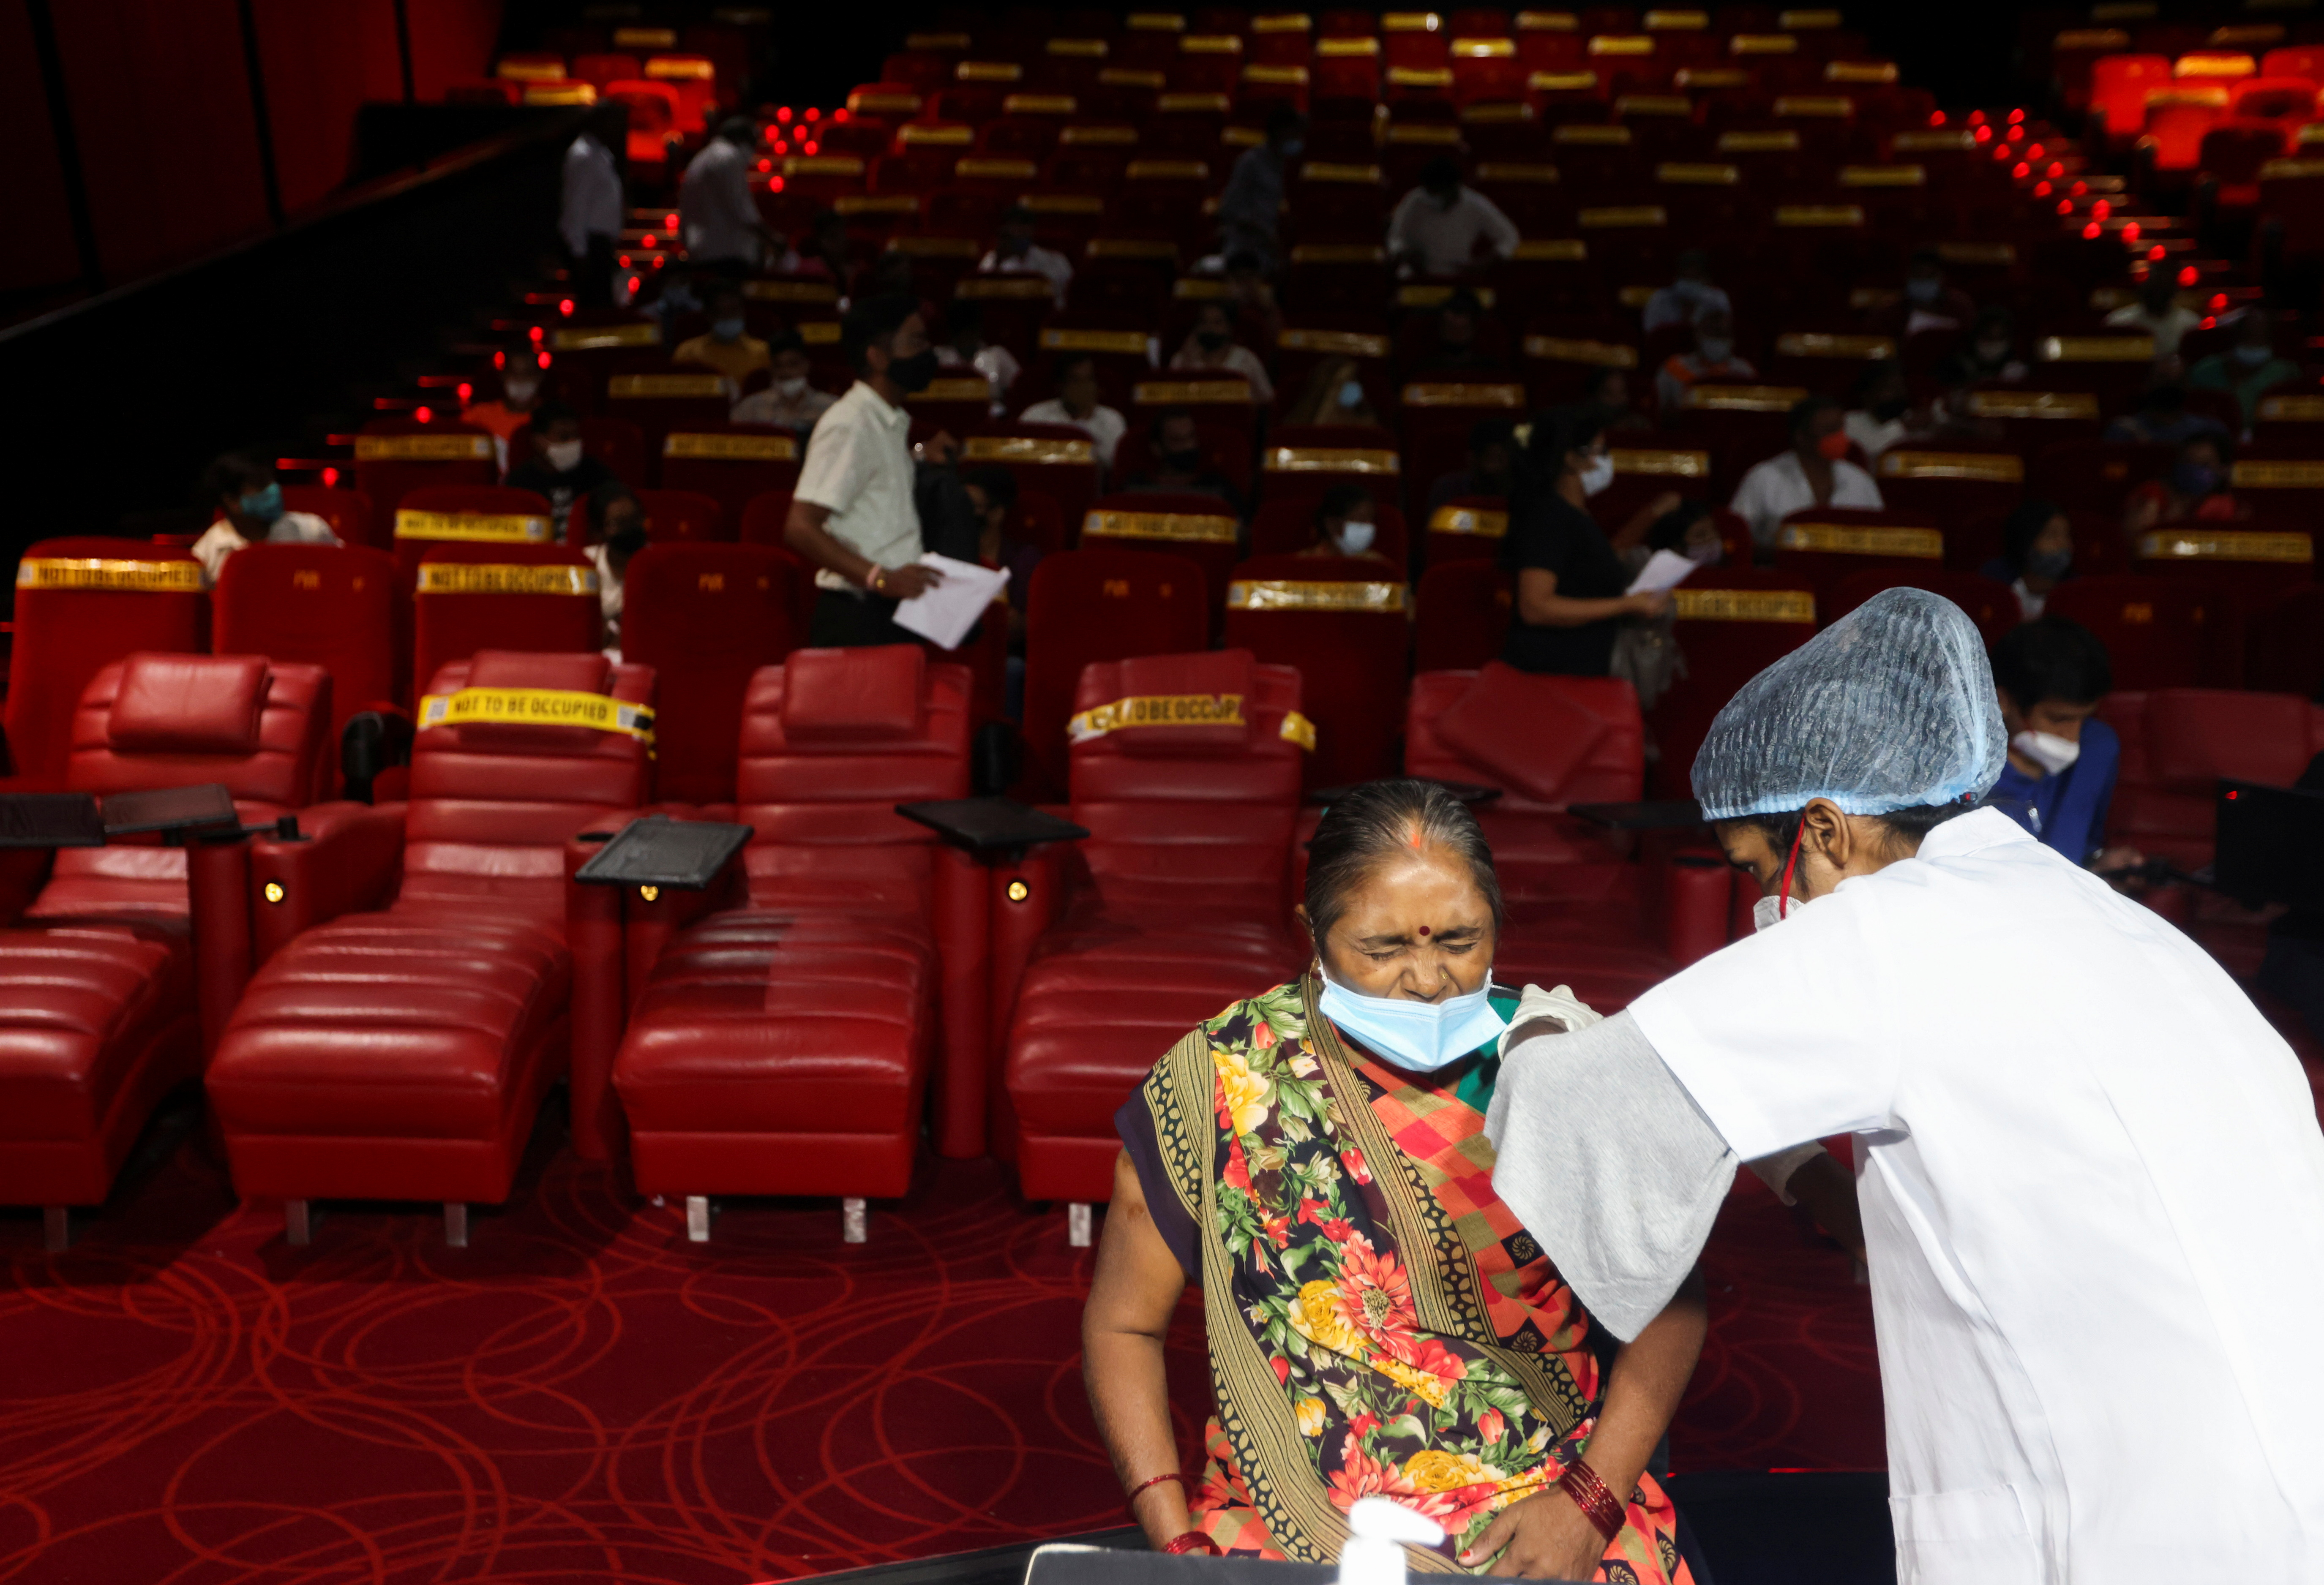 A woman reacts as she receives a dose of COVISHIELD, a vaccine against coronavirus disease (COVID-19) manufactured by Serum Institute of India, at a cinema hall in Mumbai, India, August 17, 2021. REUTERS/Francis Mascarenhas